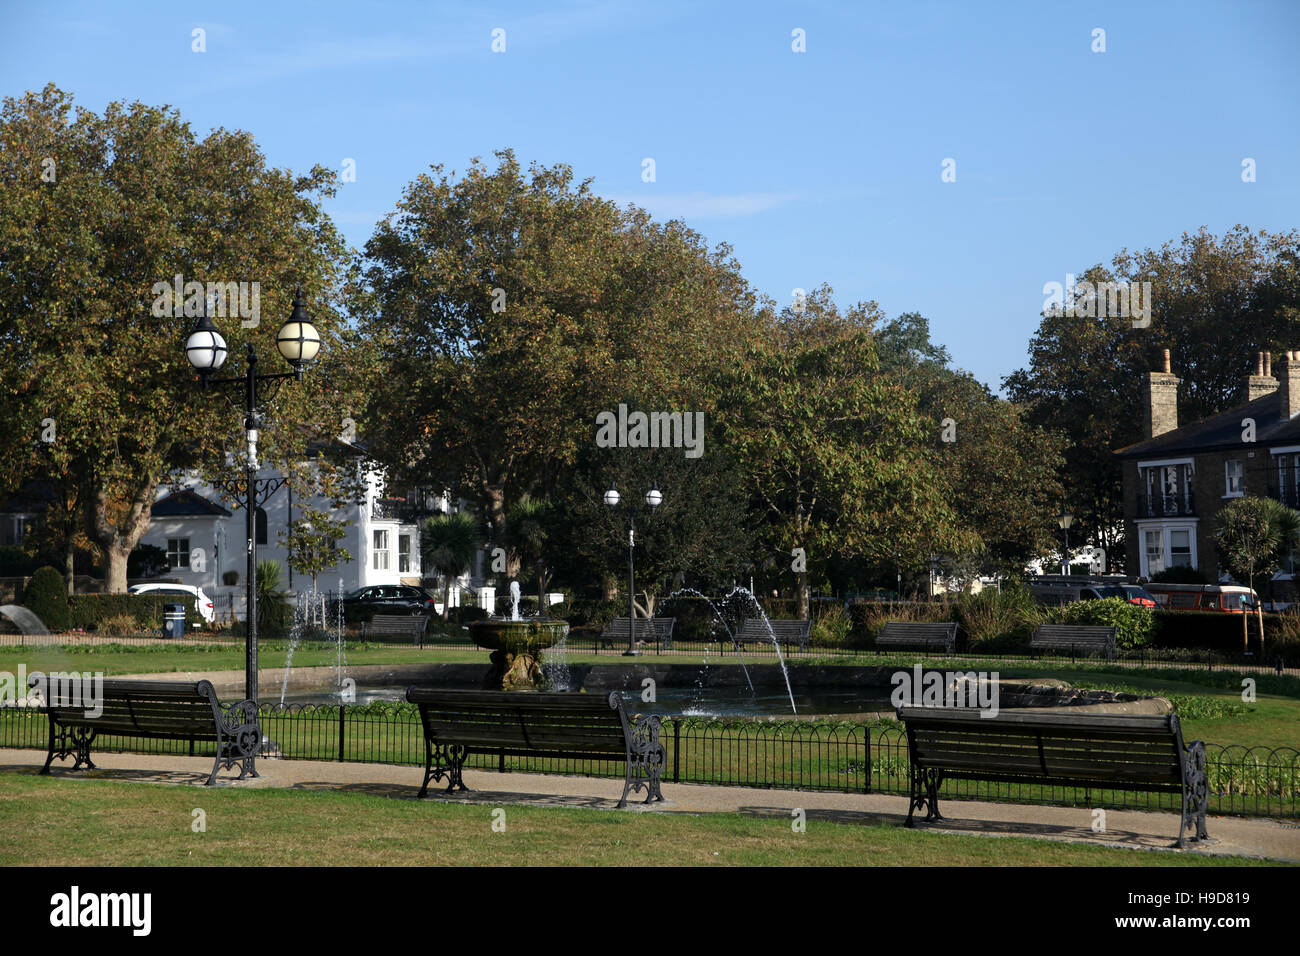 Prittlewell Square, Southend on Sea, Essex Stock Photo